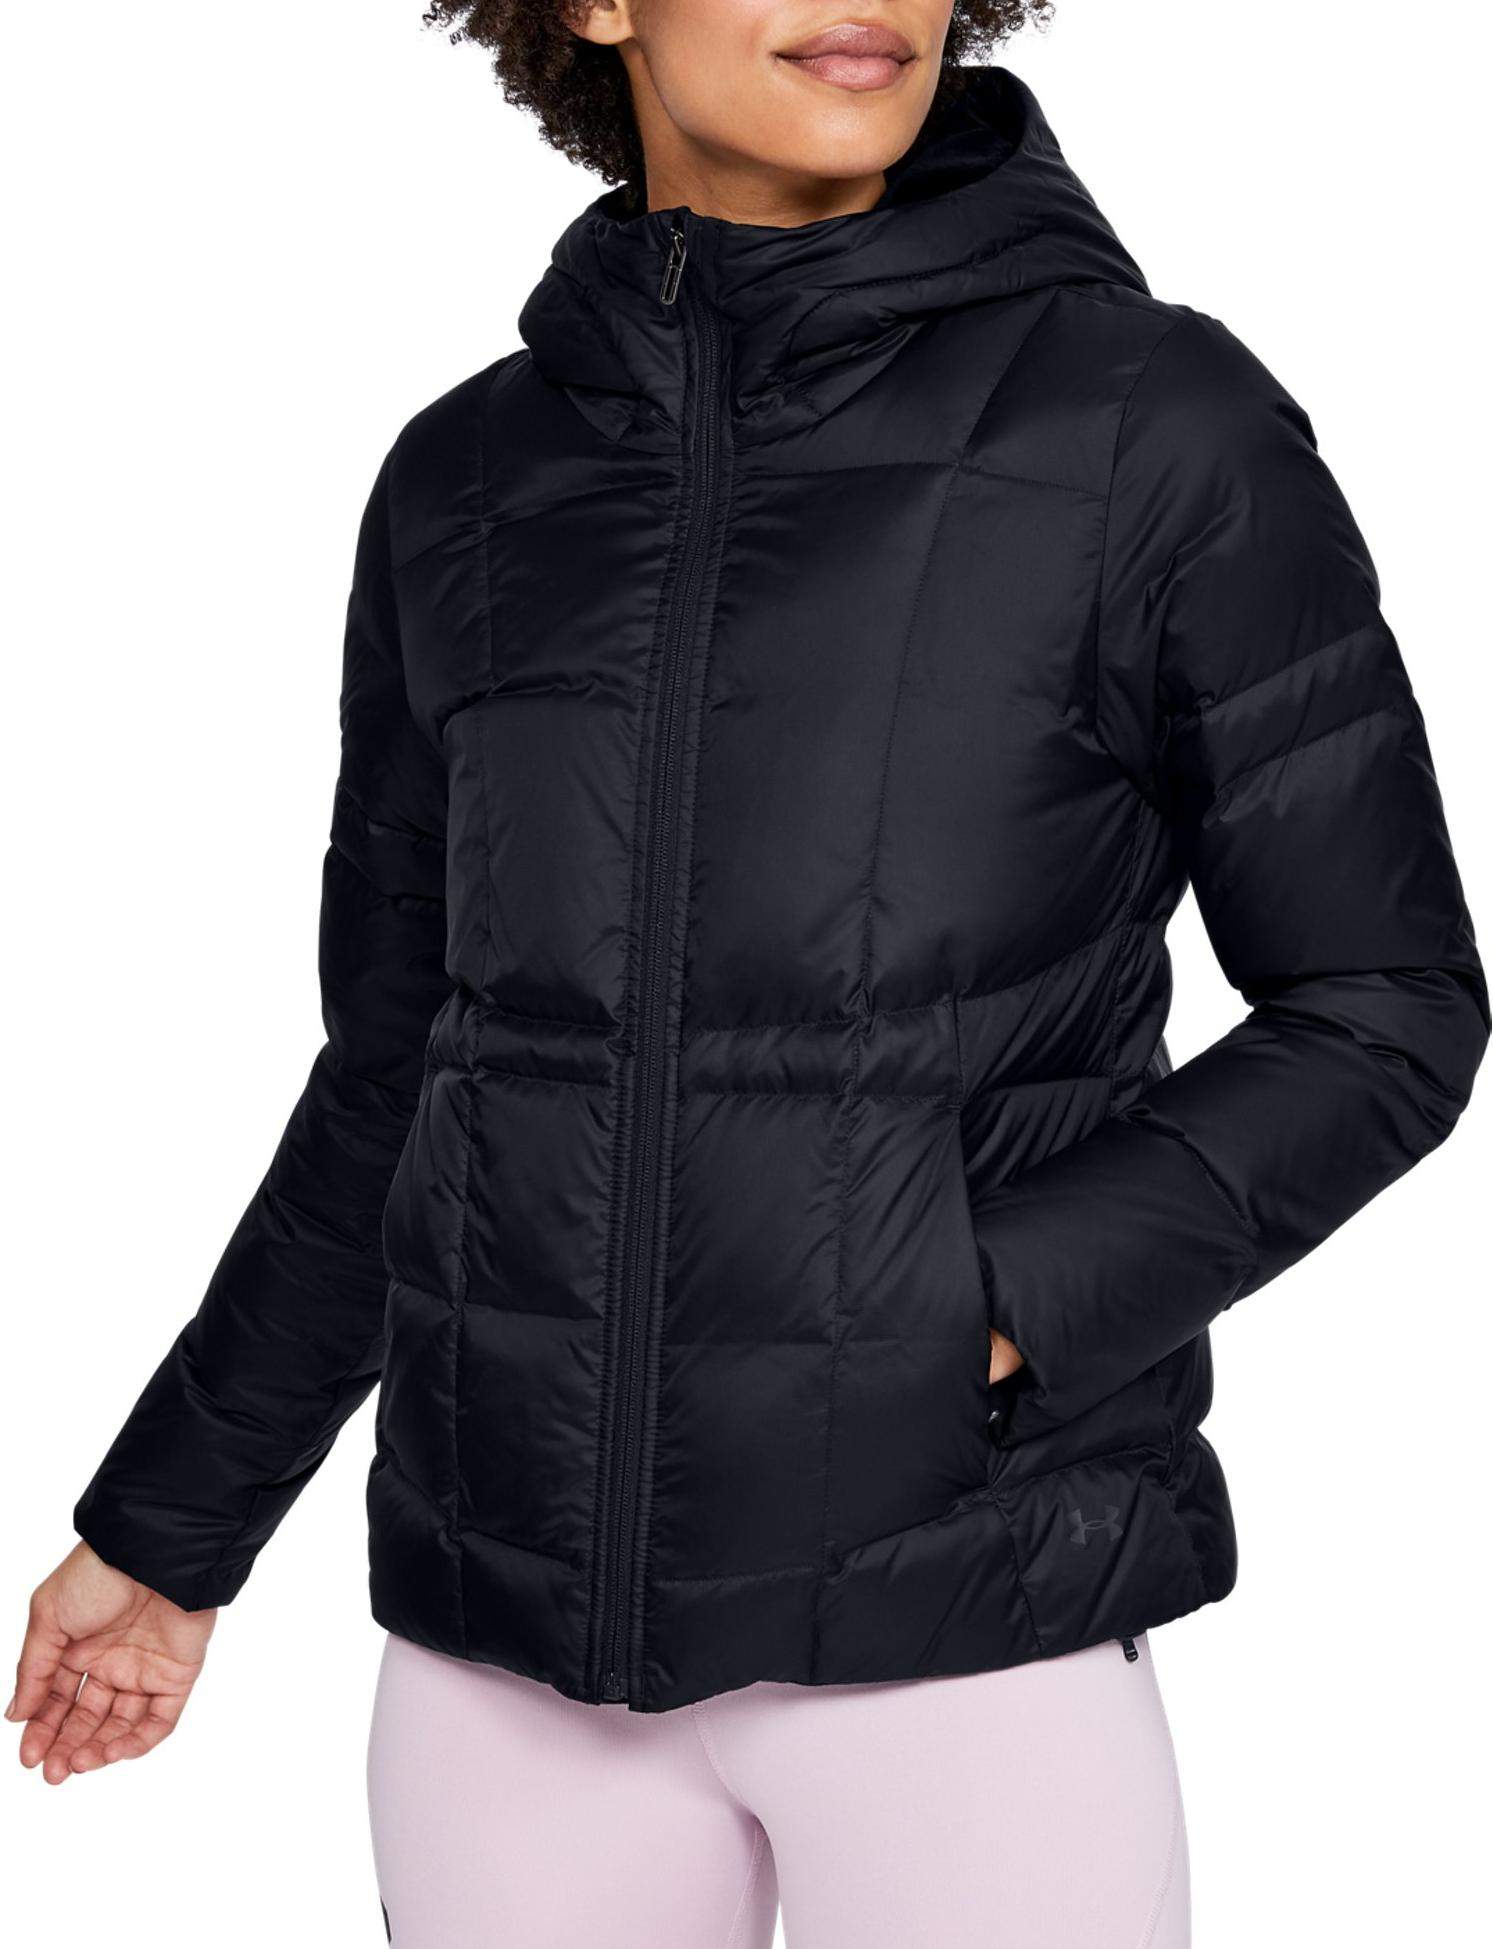 Hooded jacket Under Armour UA Armour Down Hooded Jkt